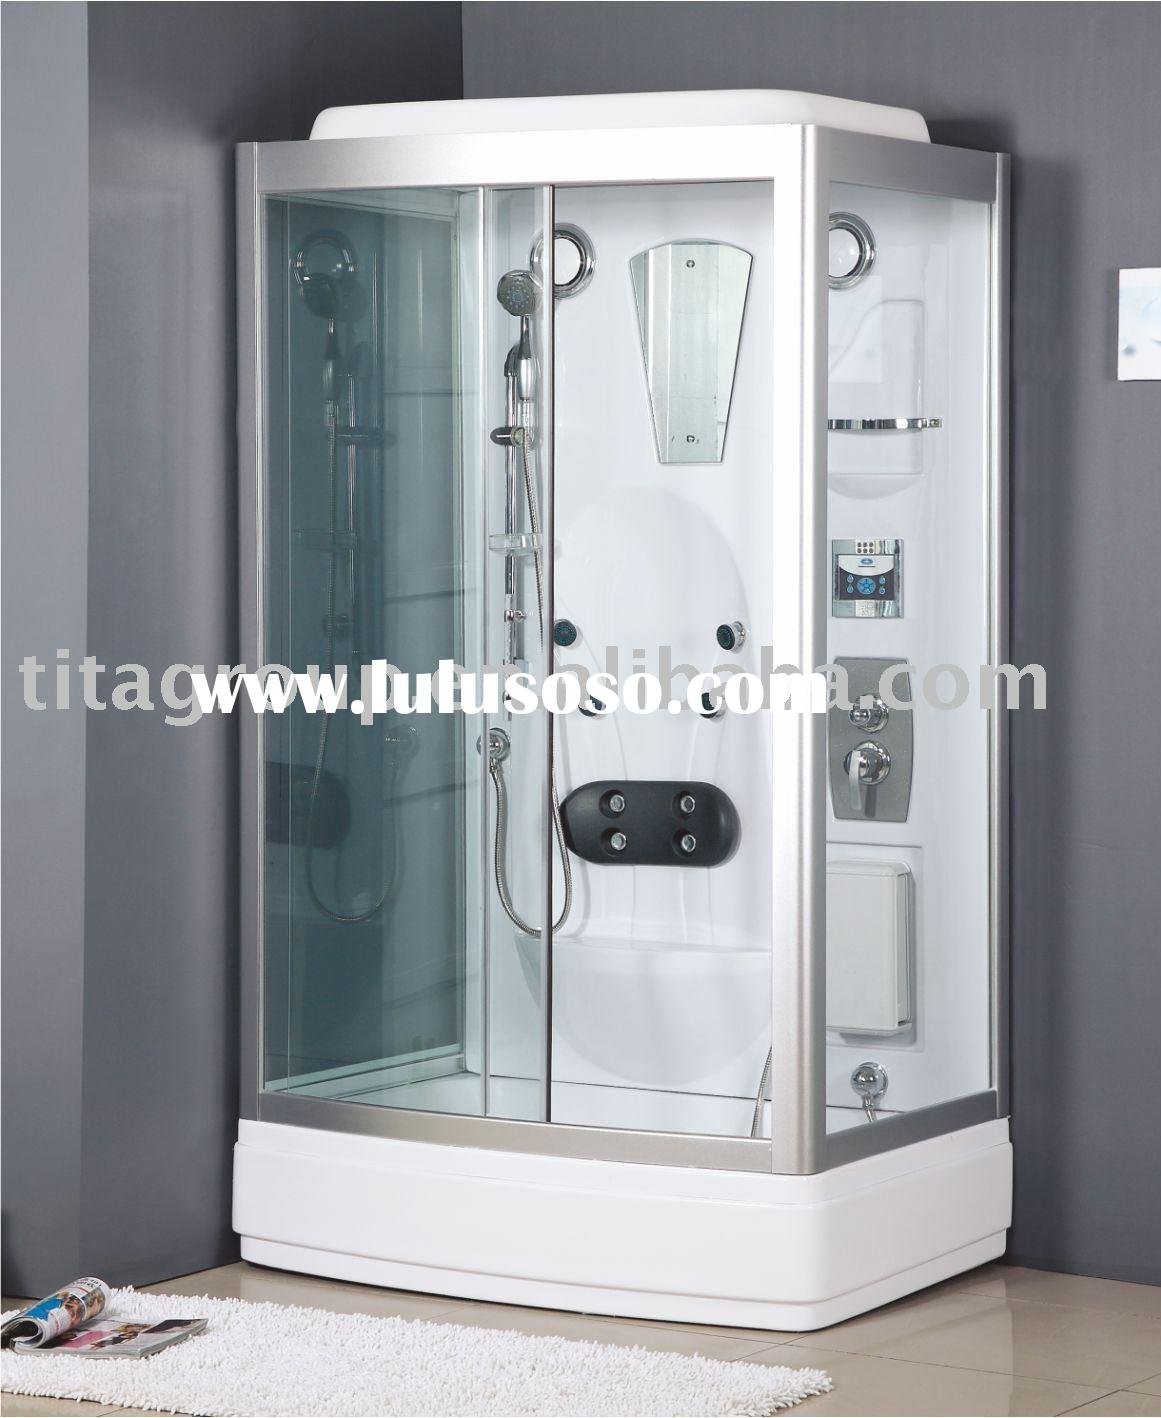 home steam baths spa shower room with thermometer